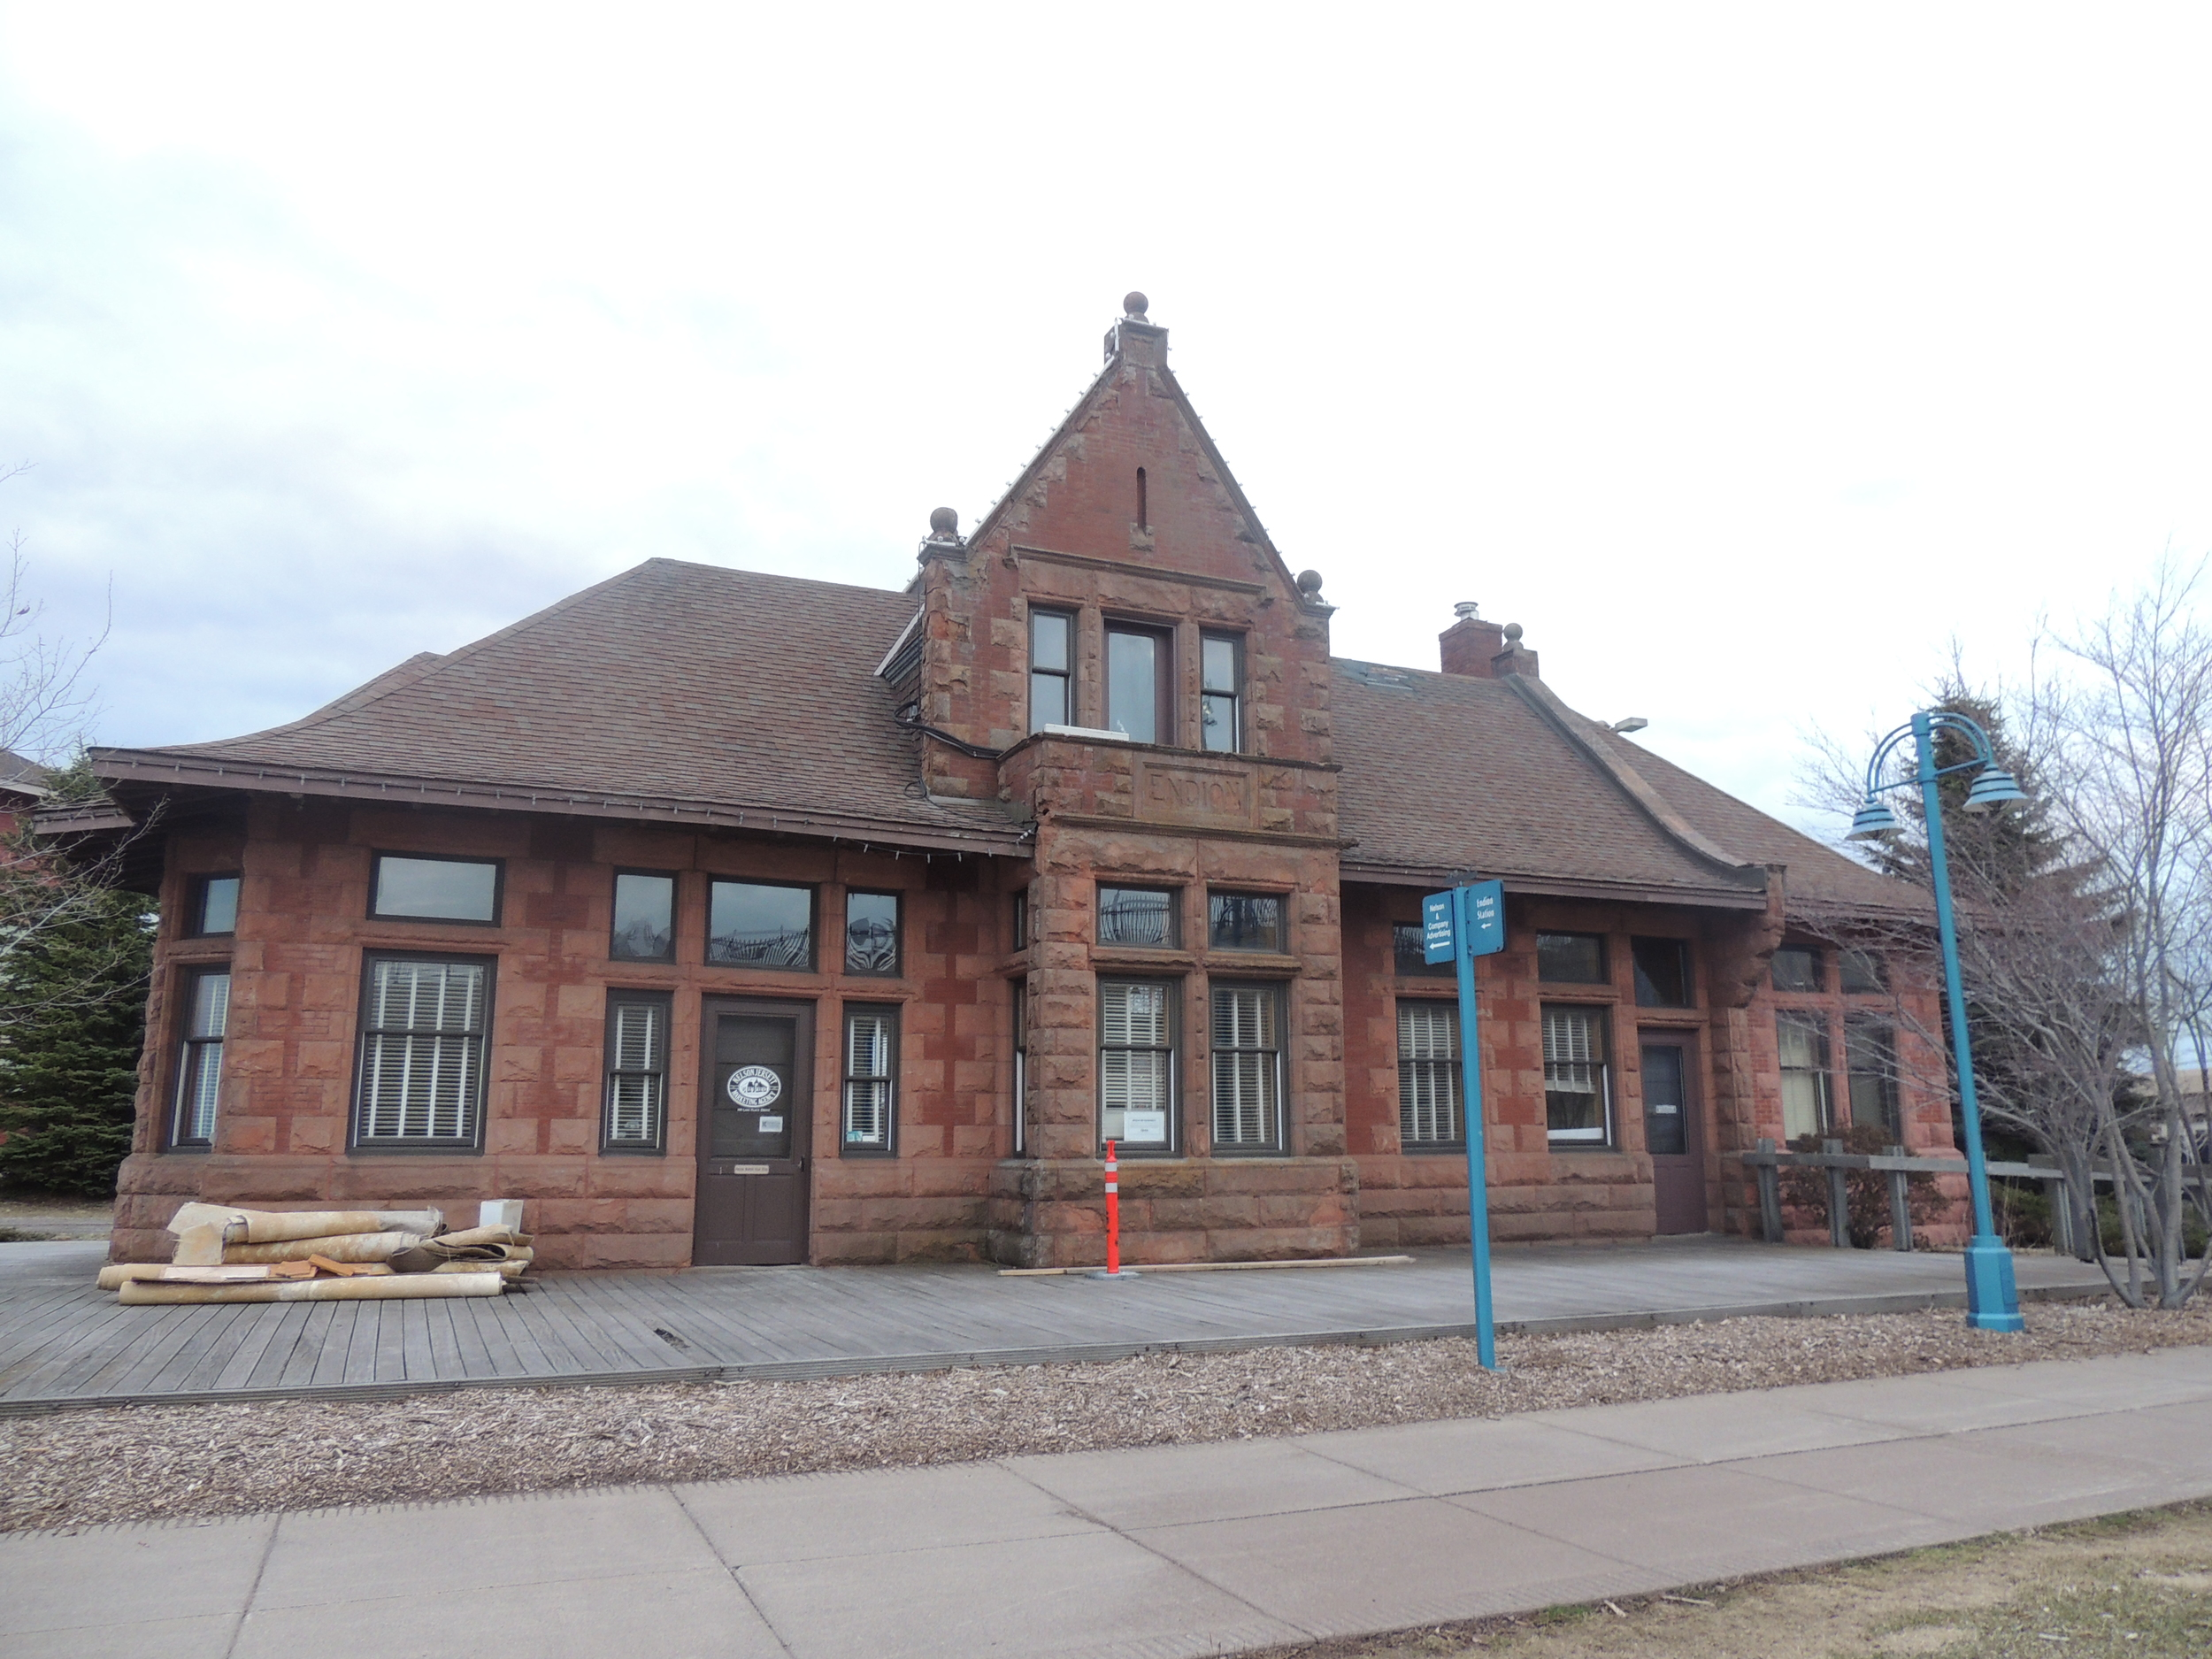 Historic Endion Station building in Canal Park